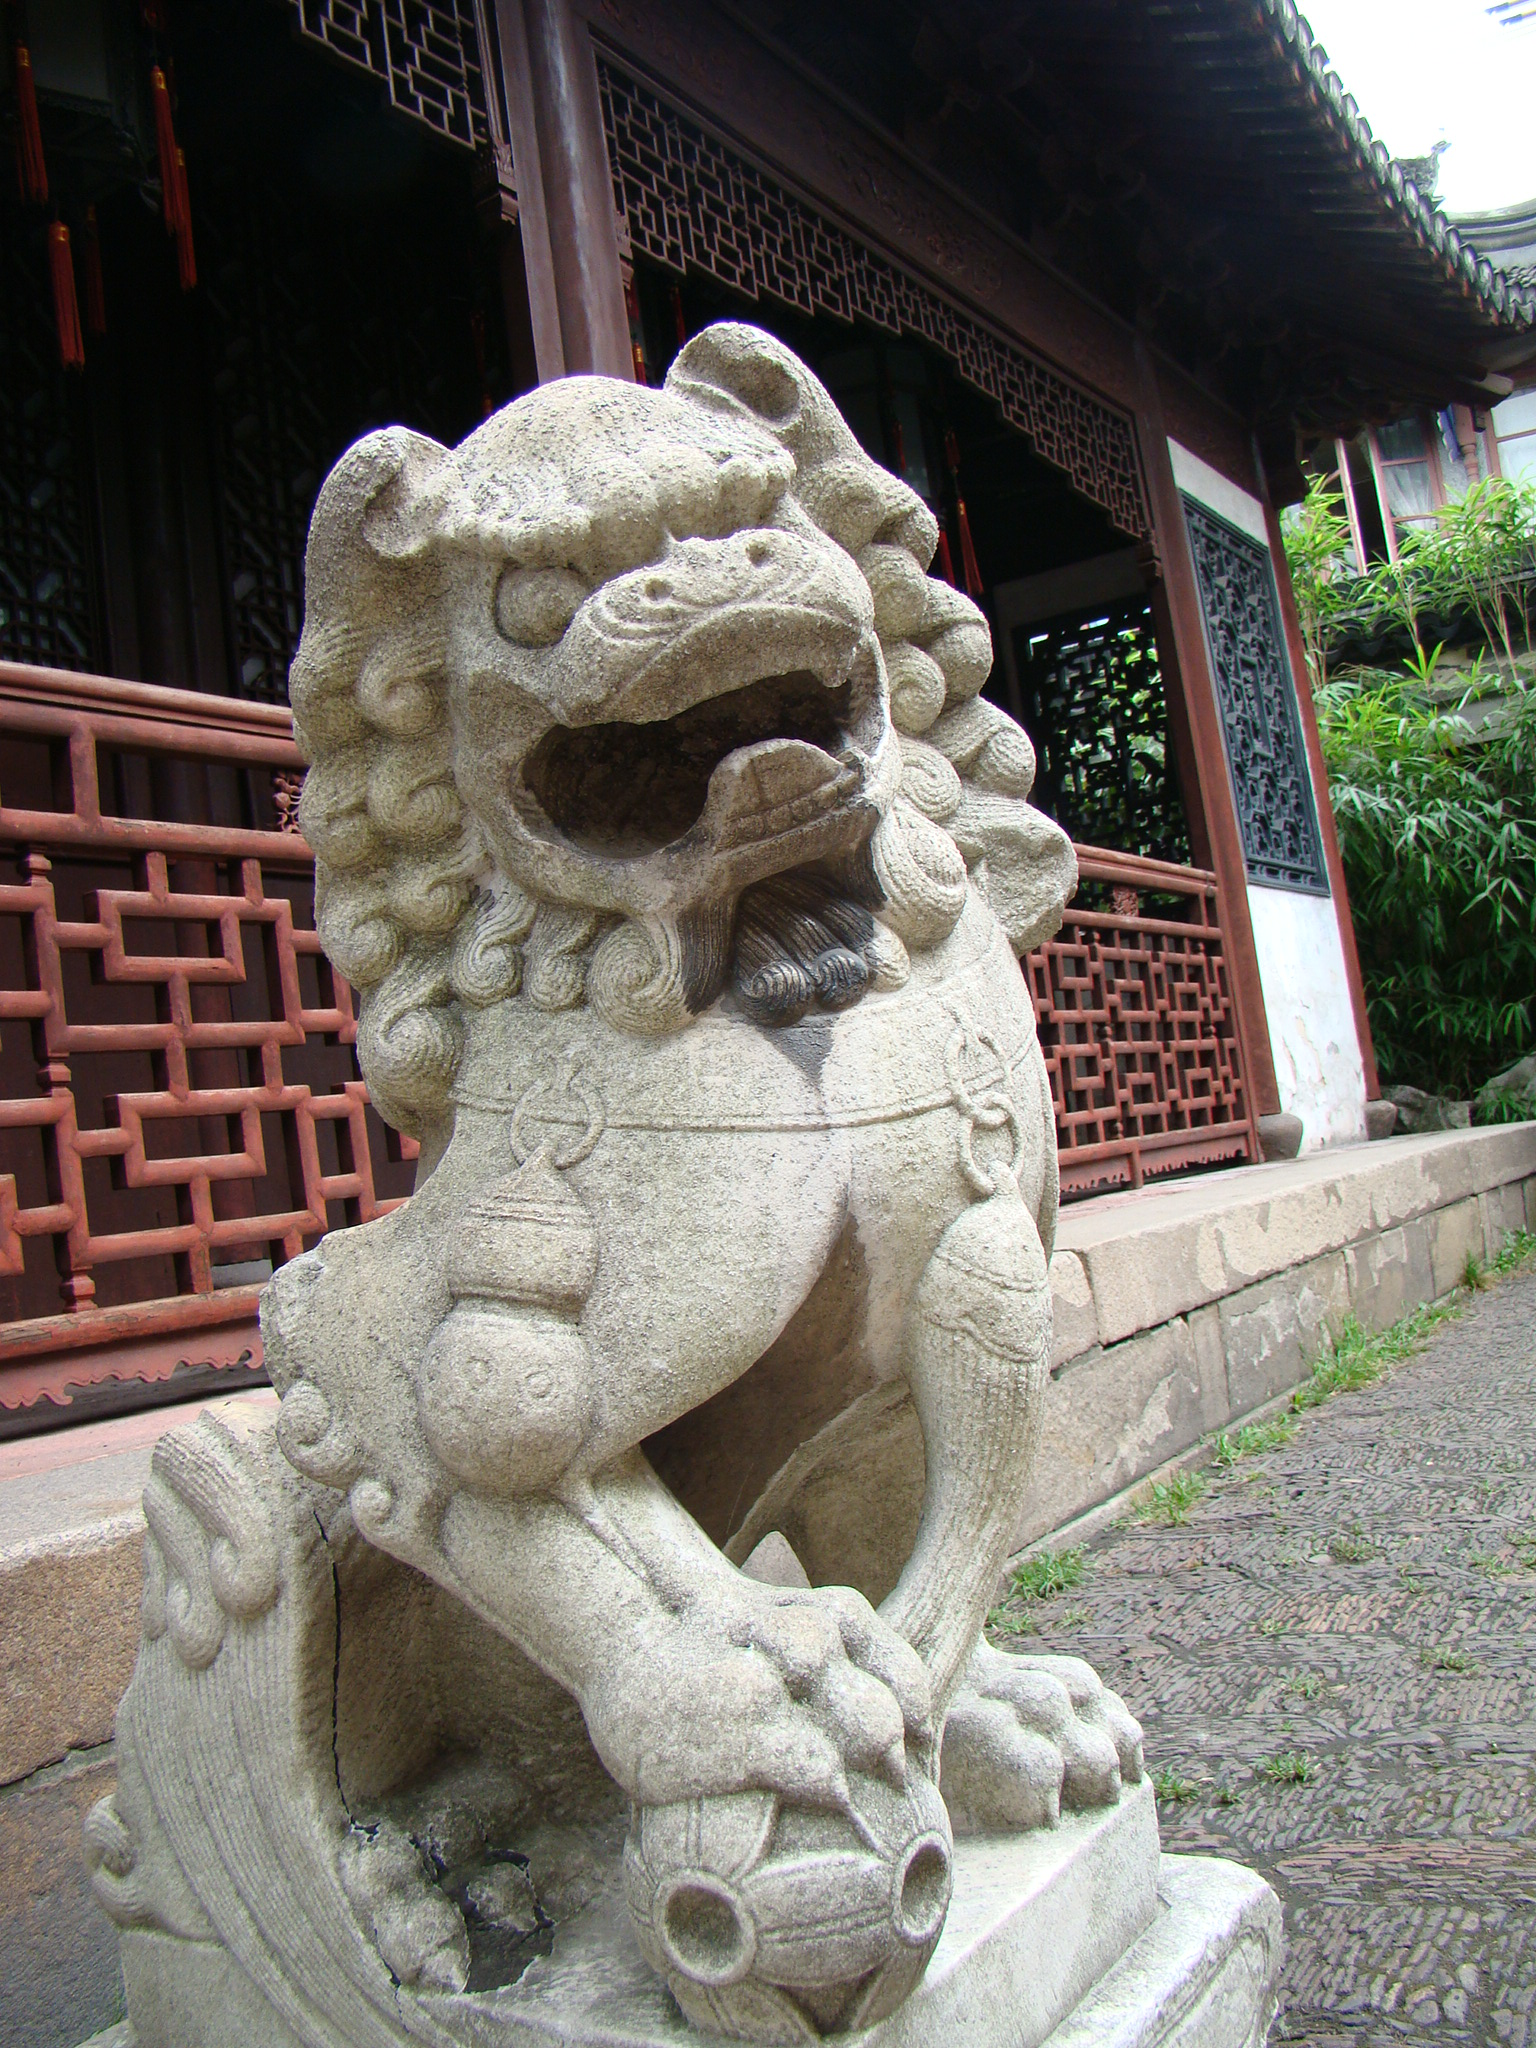 Yu yuan classical garden in the heart of Shanghai,